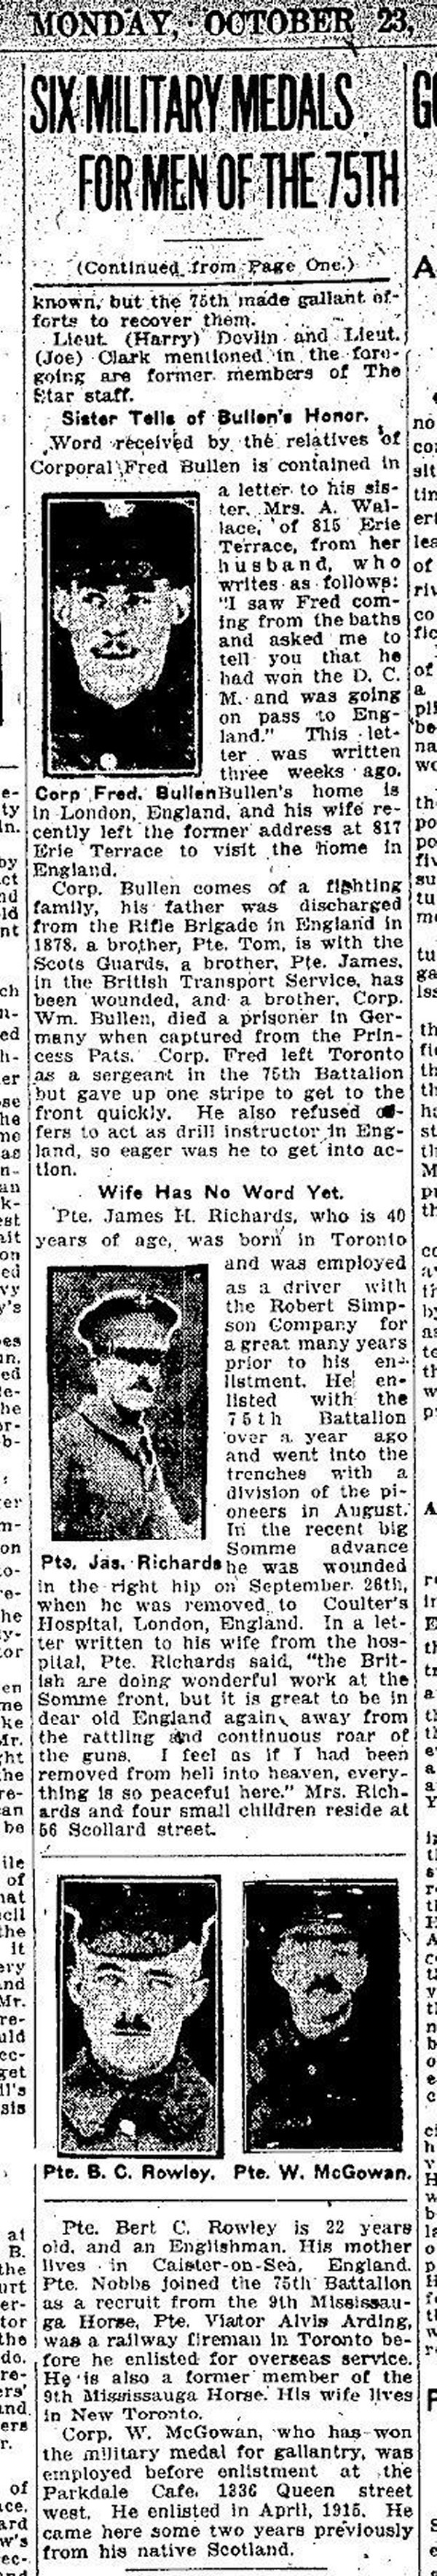 Newspaper Clipping (2 of 2)